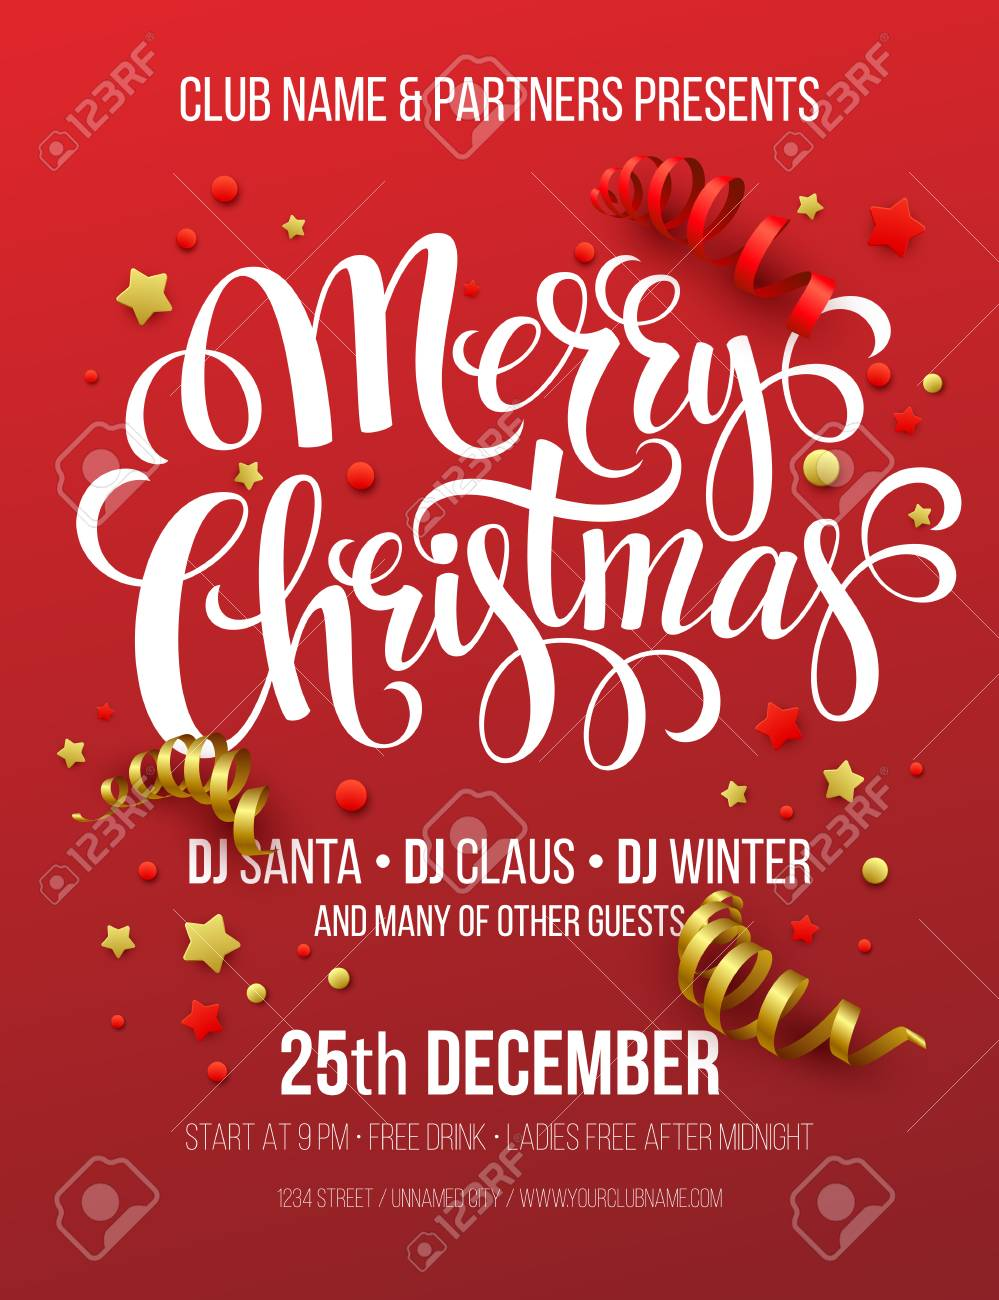 Christmas Party Poster.Merry Christmas Party Poster Vector Illustration Eps10